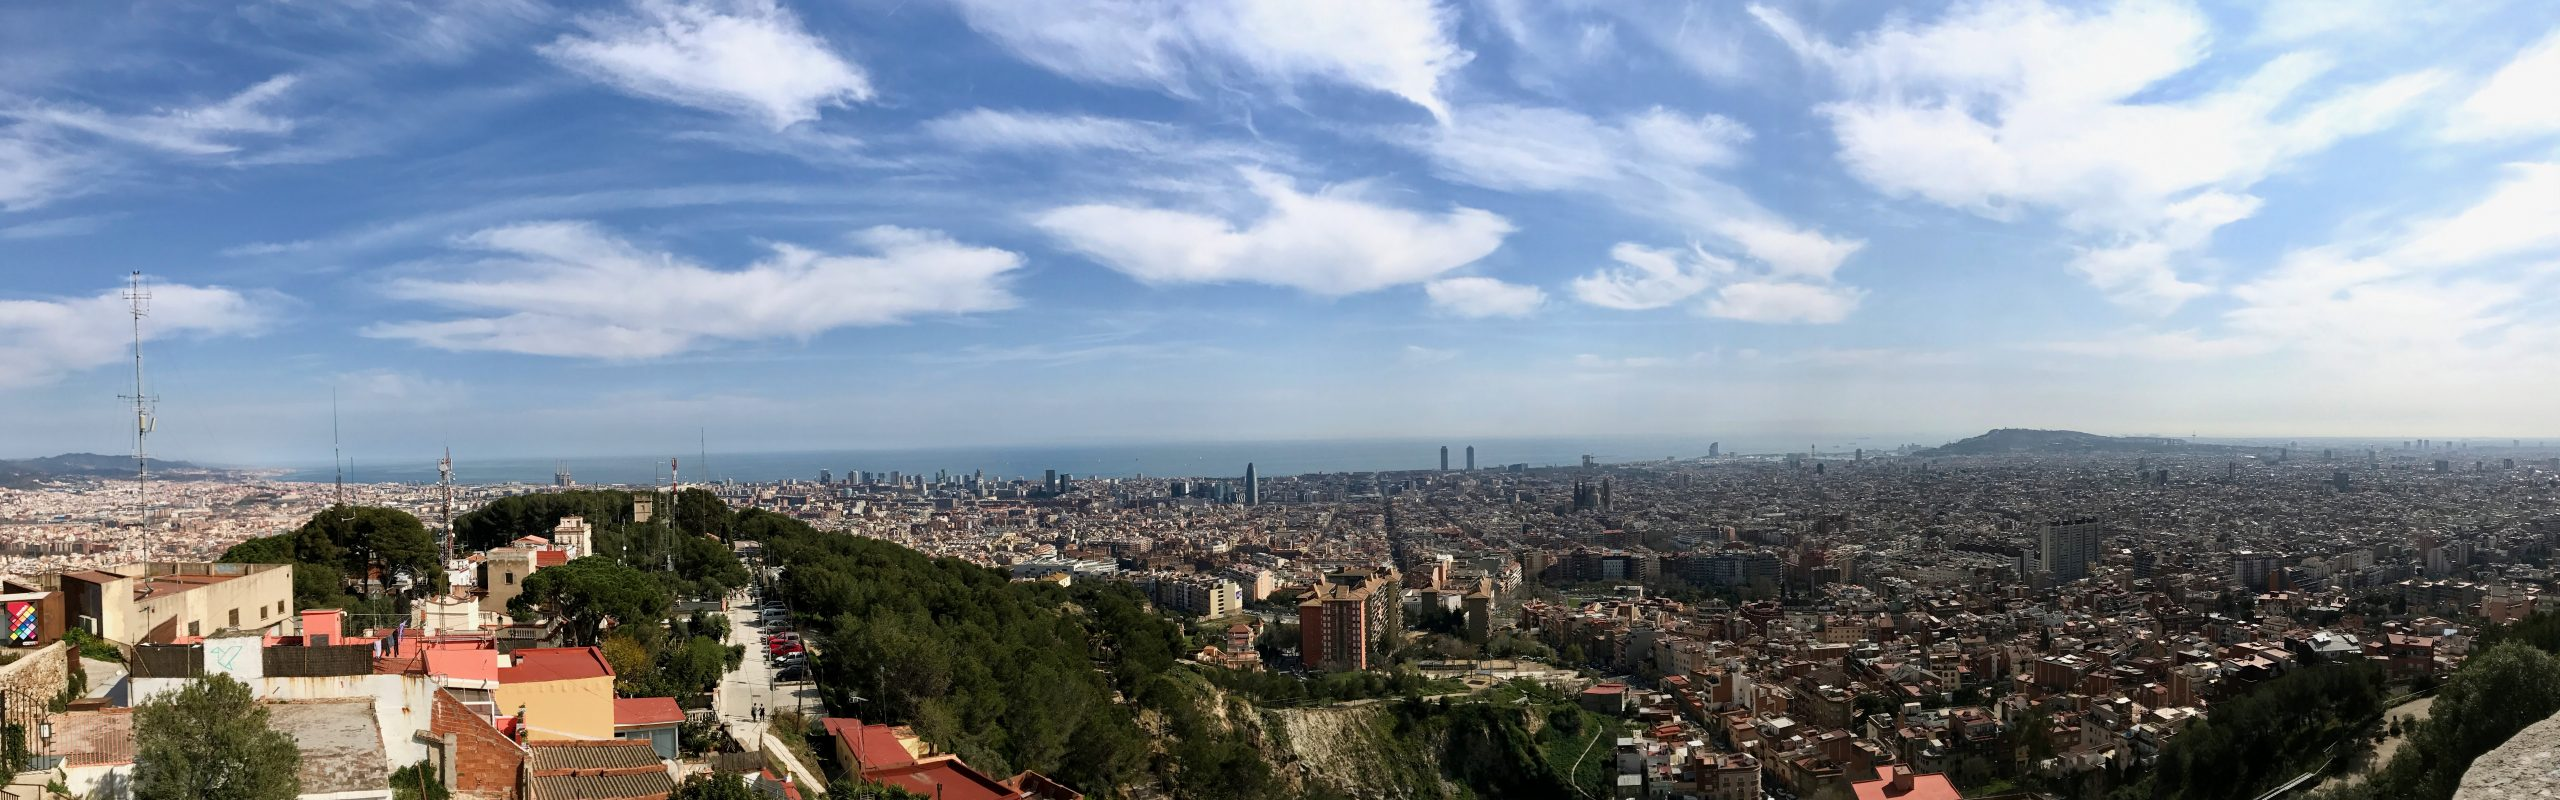 Our Barcelona adventure and other travel stories